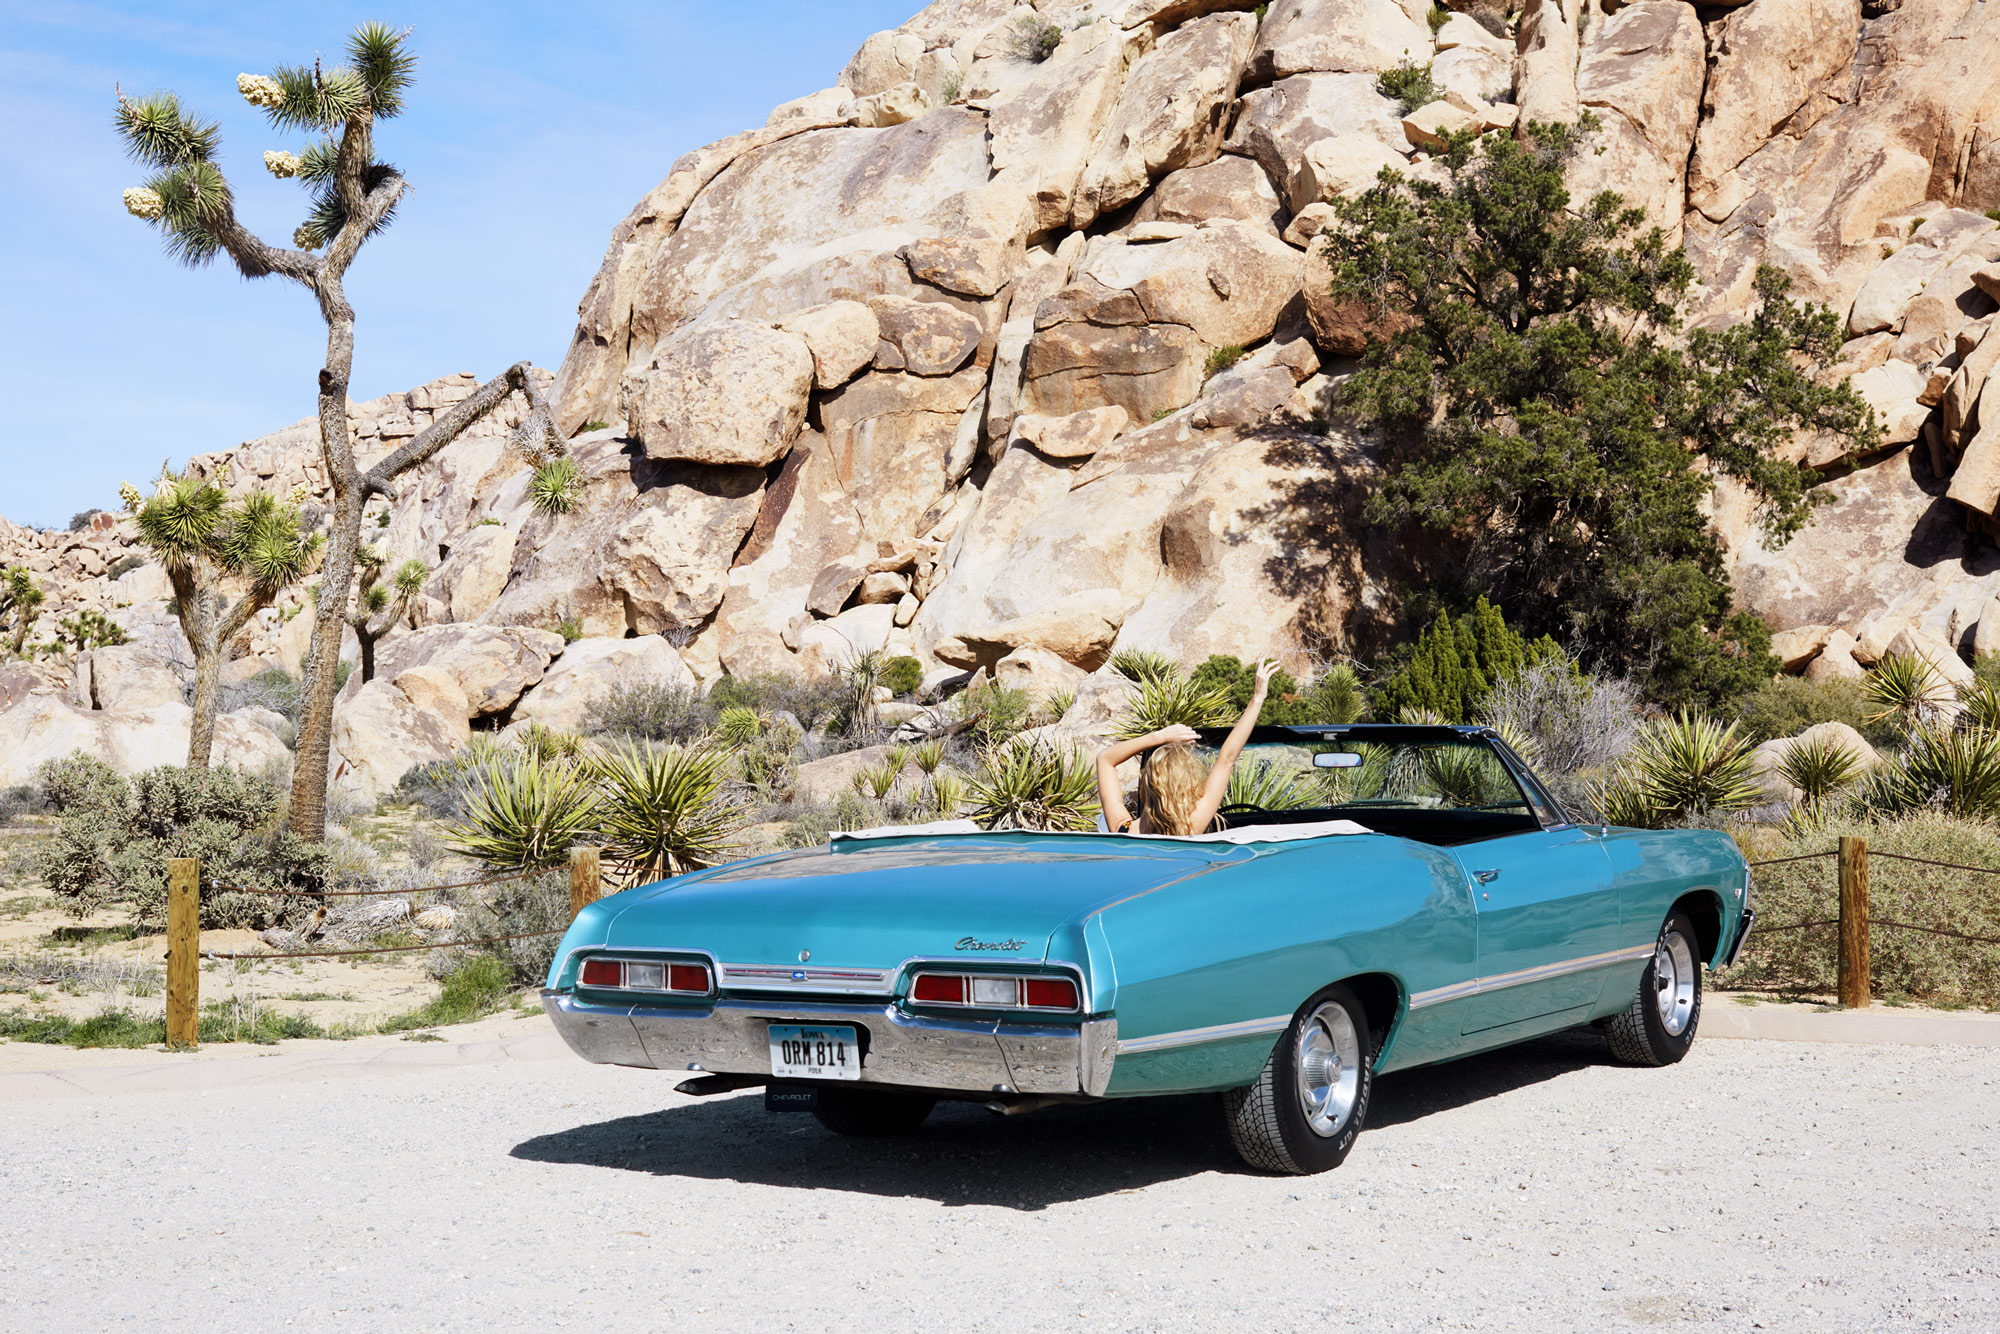 A convertible parked in the desert. Kim Genevieve Los Angeles Lifestyle Photographer